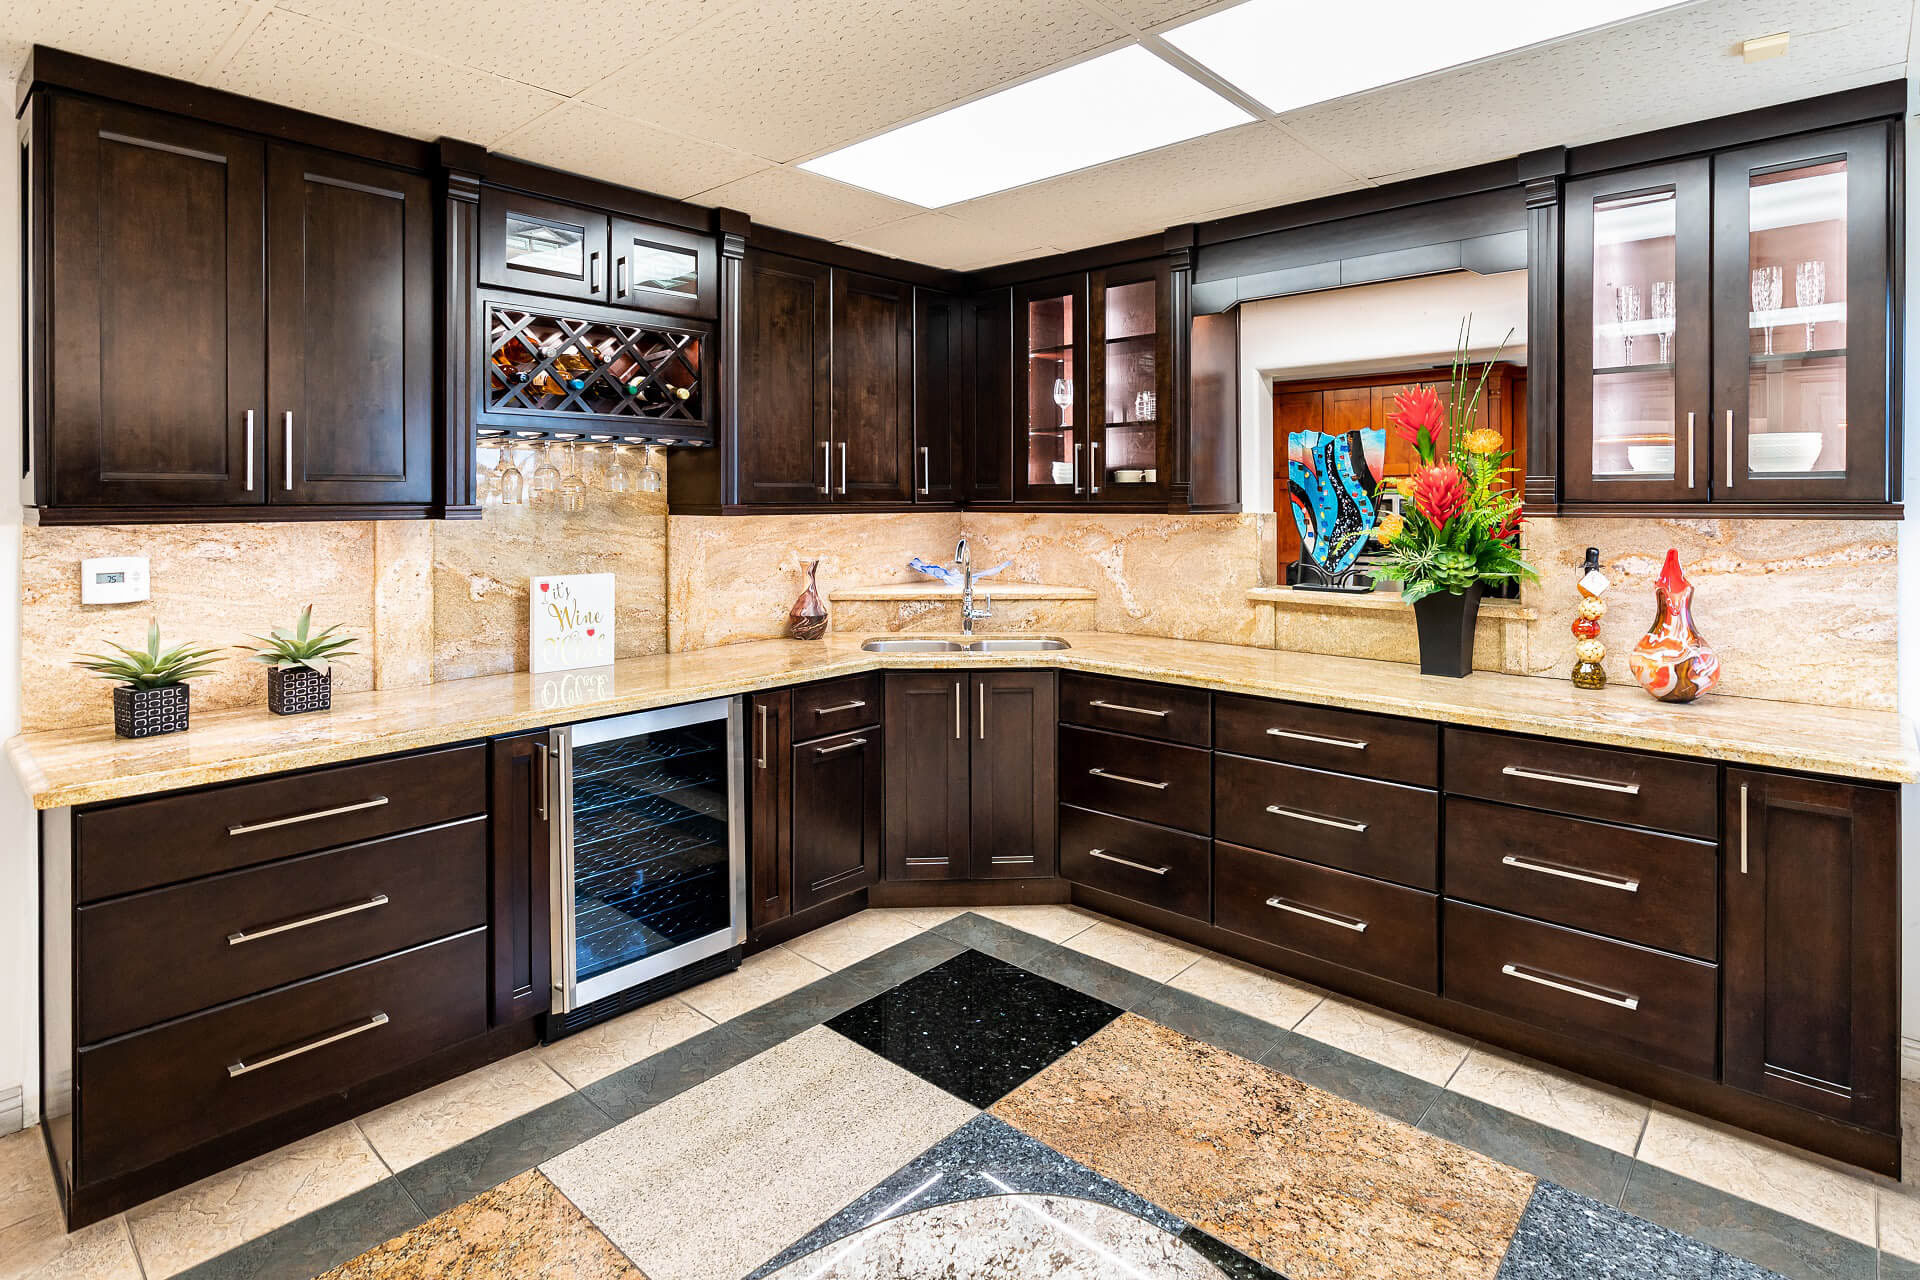 Modern kitchen cabinets in Lake Forest CA